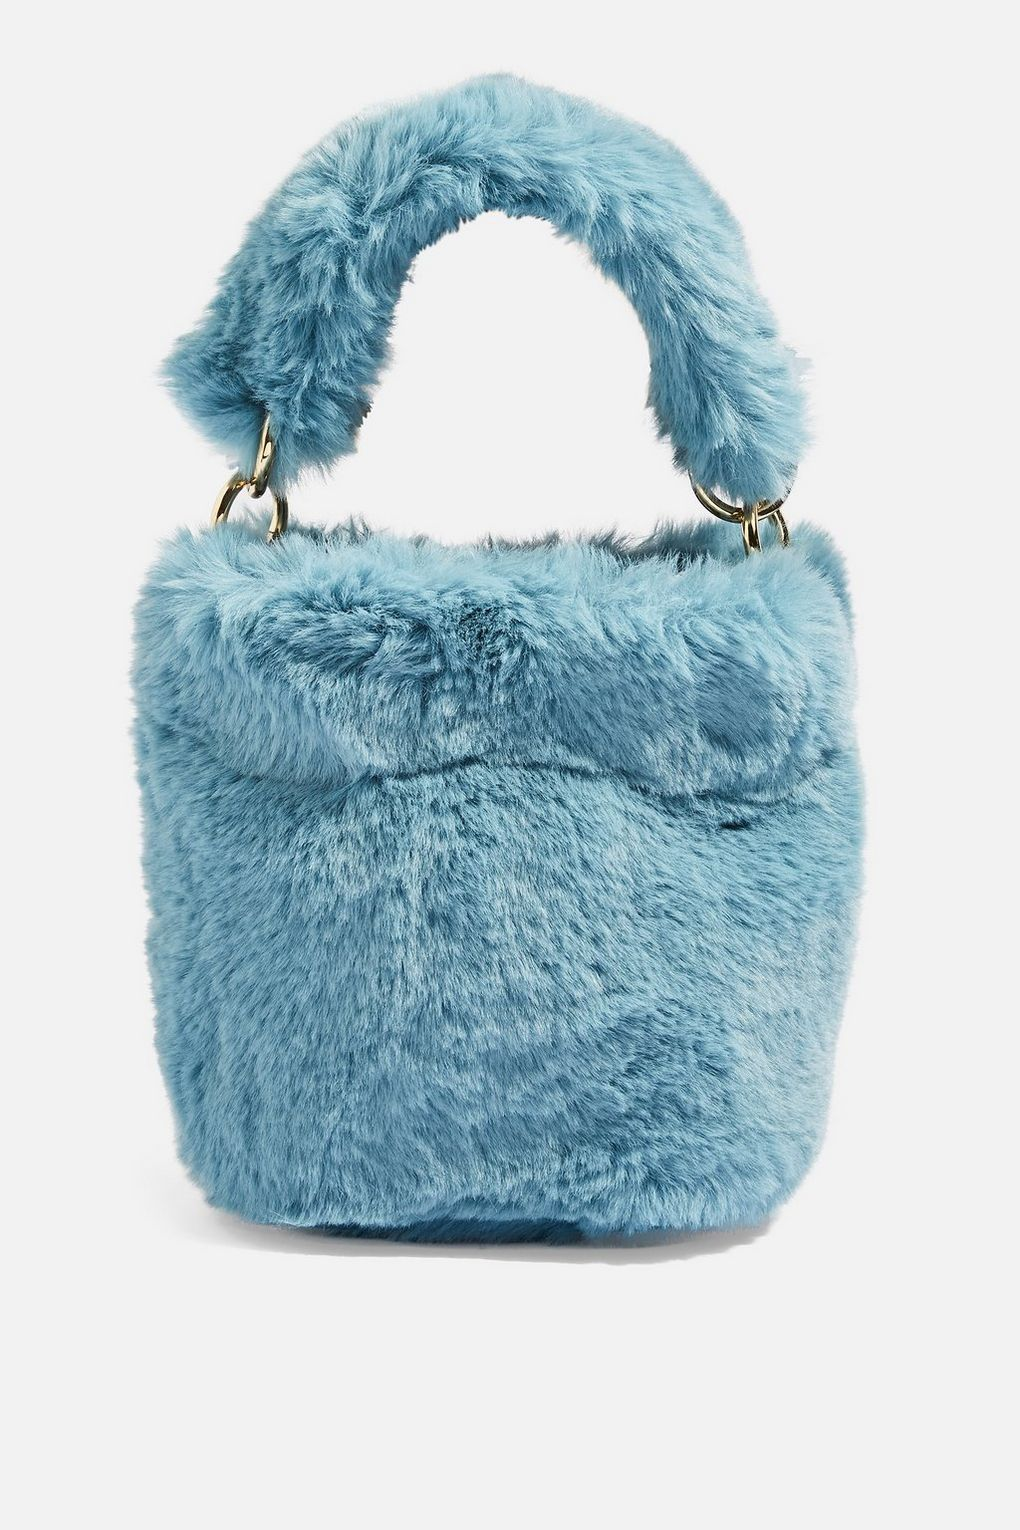 e9677548d9 Teddy Faux Fur Bucket Bag - Bags   Purses - Bags   Accessories - Topshop  Europe